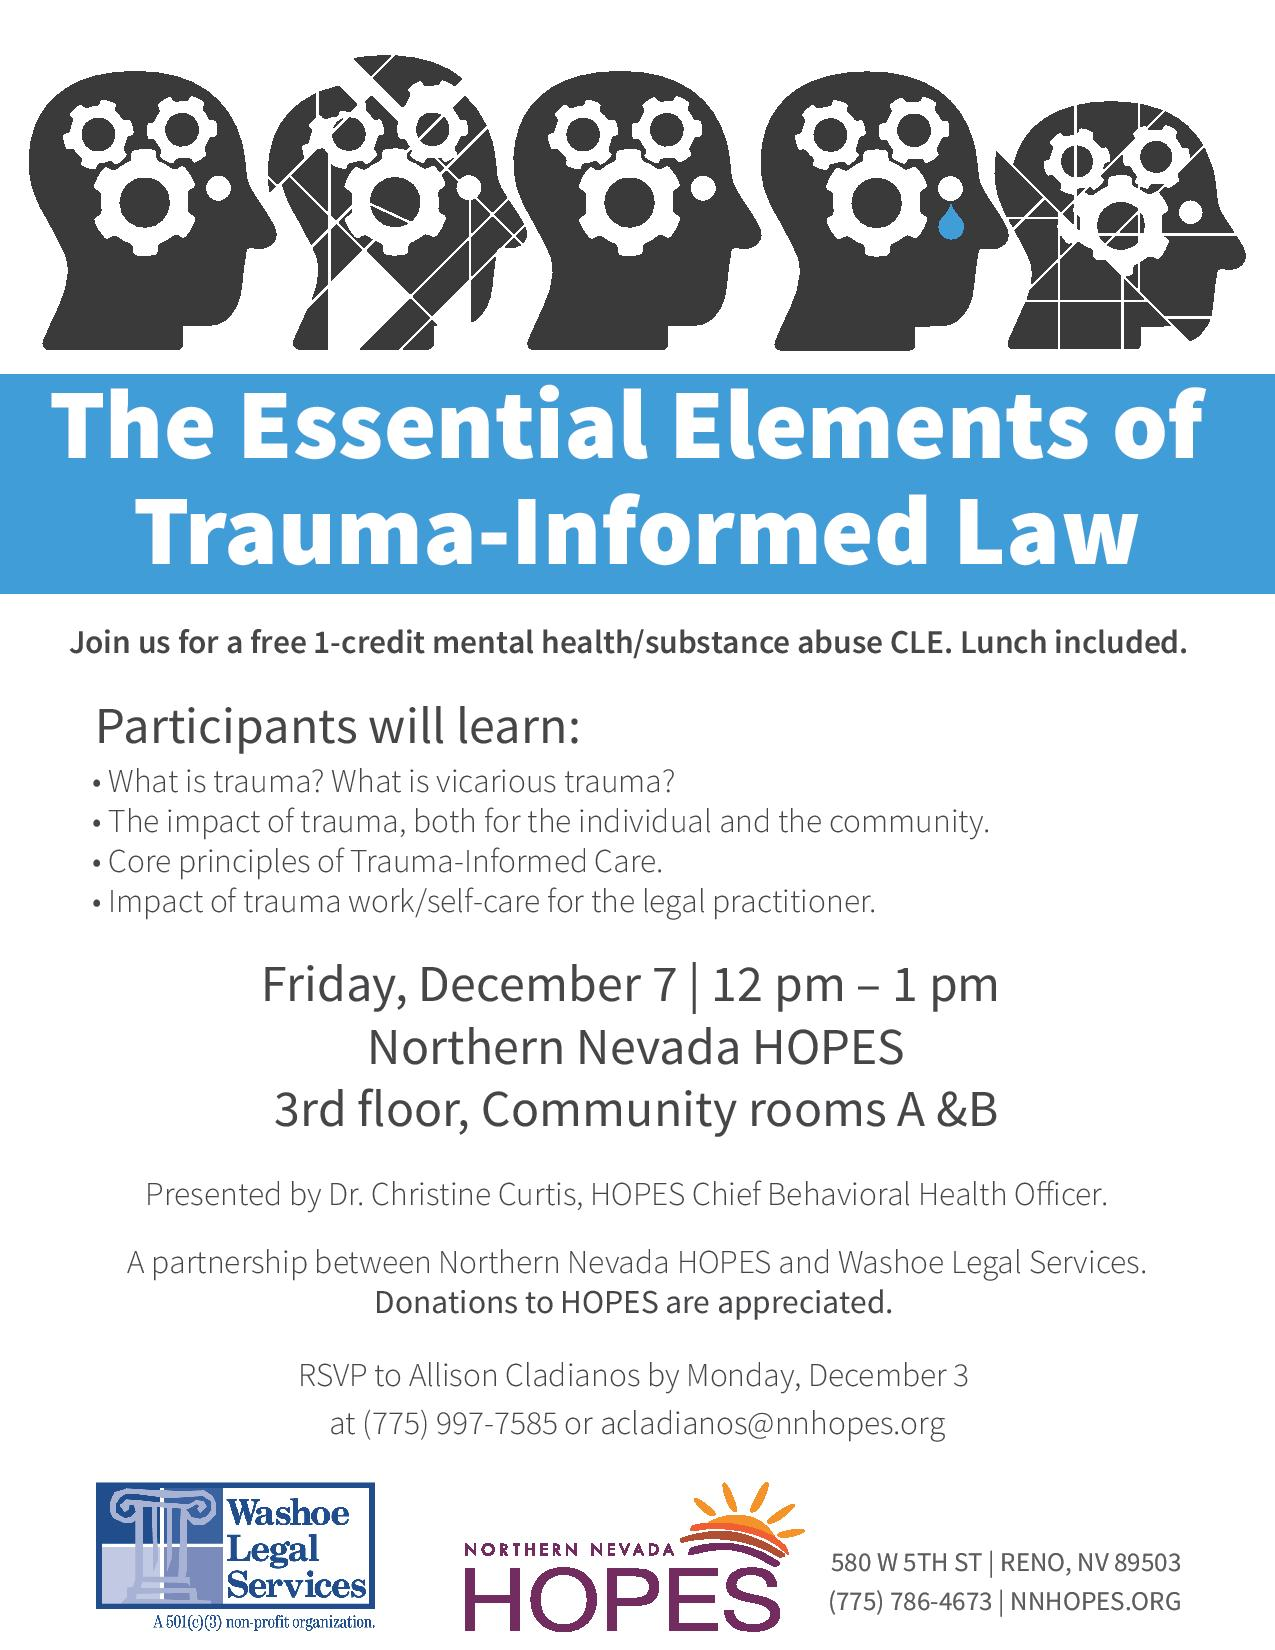 CLE - Essential Elements of Trauma